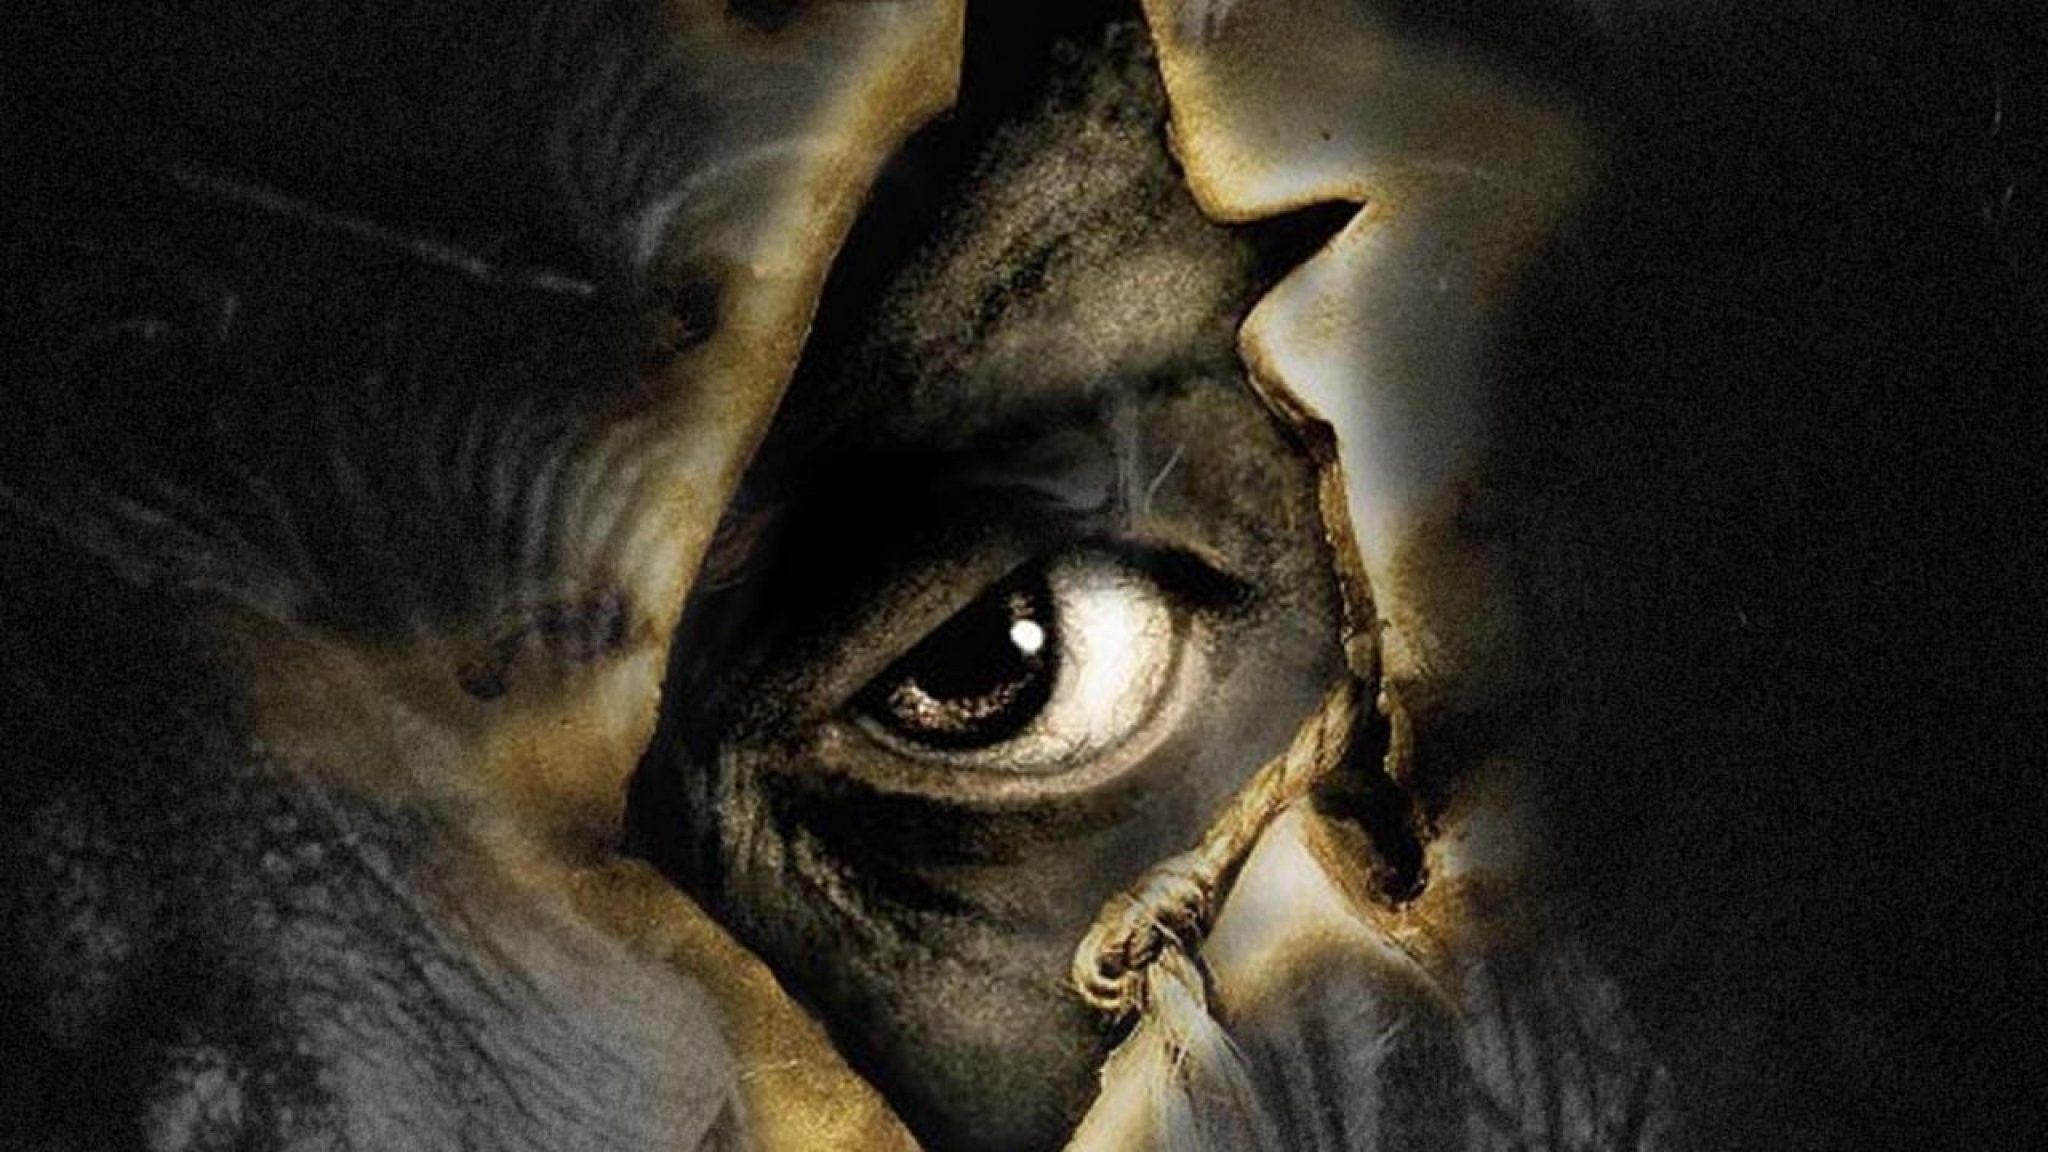 jeepers_creepers_demon_horror_entertainment_ultra_3840x2160_hd-wallpaper-1709185